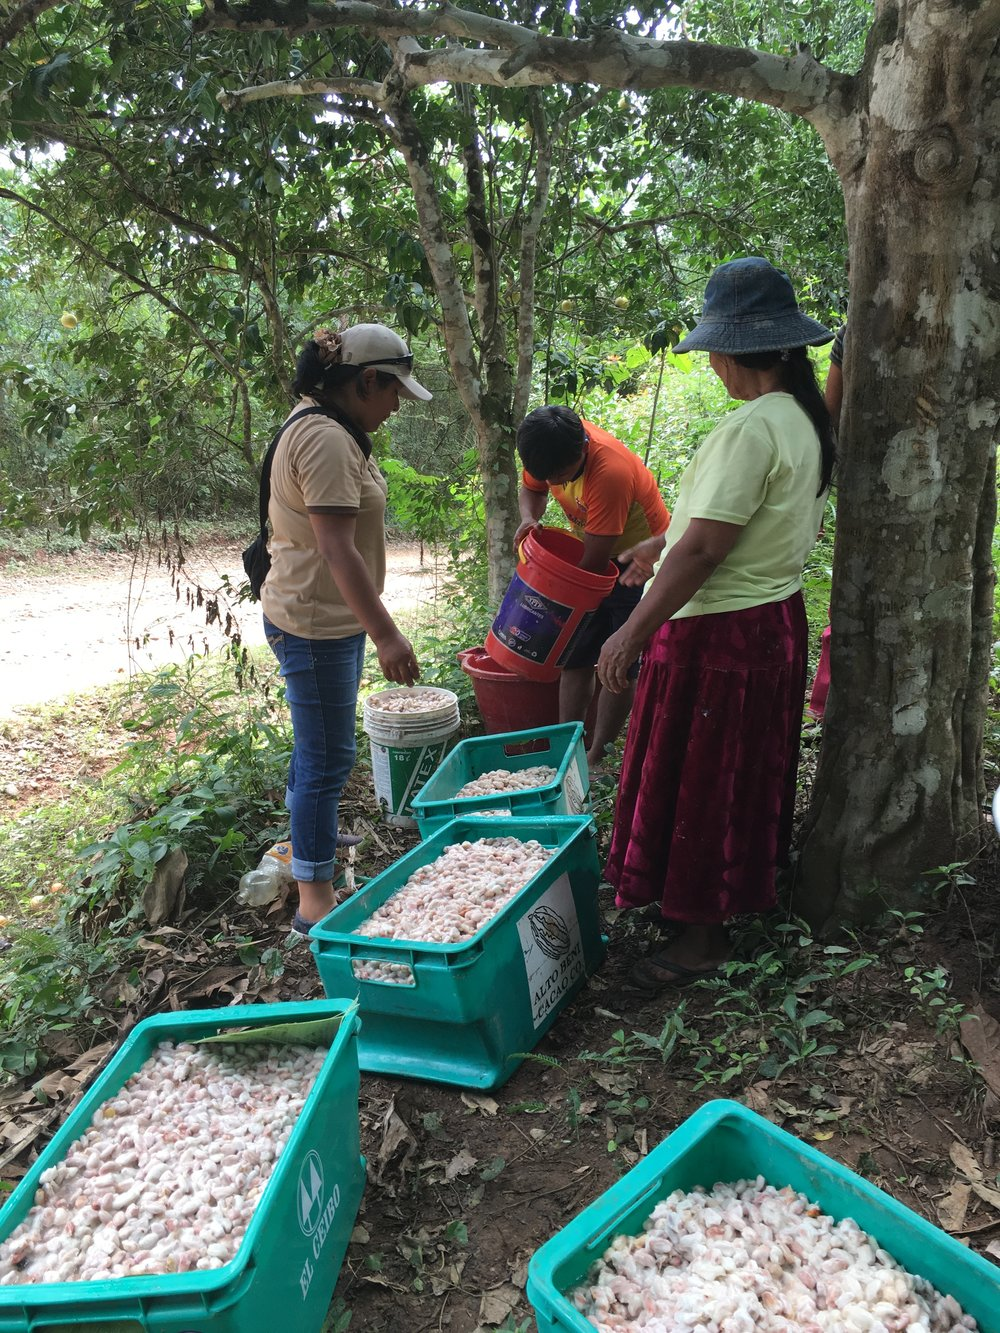 Harvesting the cacao